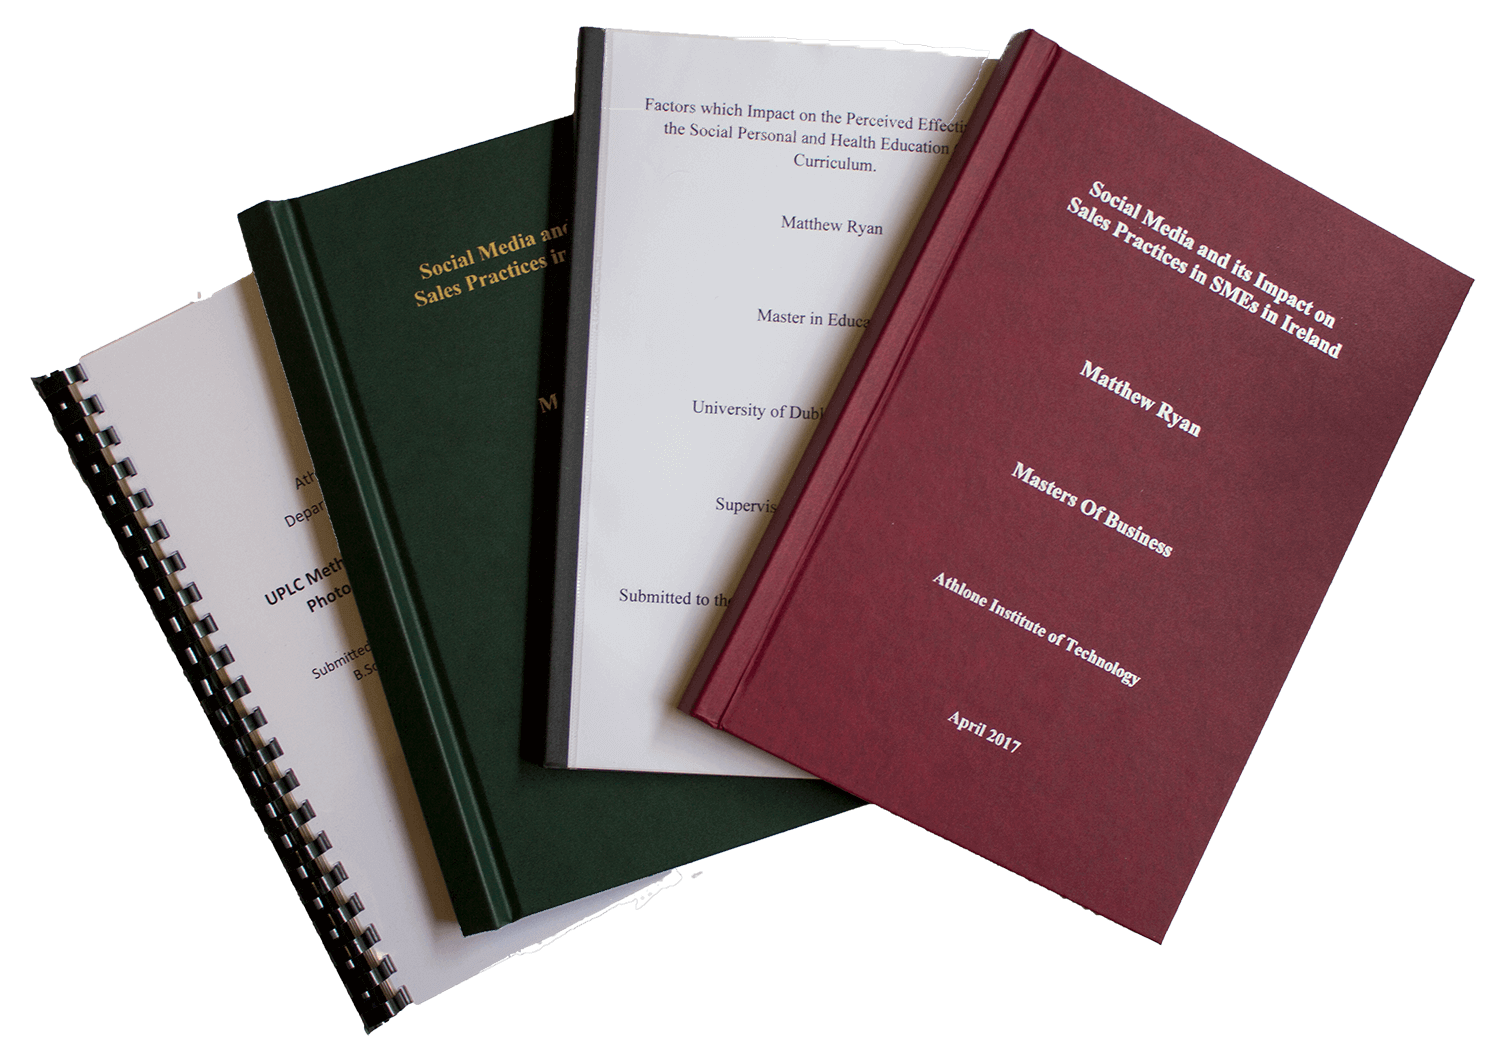 binding a thesis Thermal binding: the affordable variant for dissertation binding in large quantities thermal binding is an option if larger quantities of the dissertation are required be it for applications or as copies for applications, friends, or your supervisor.